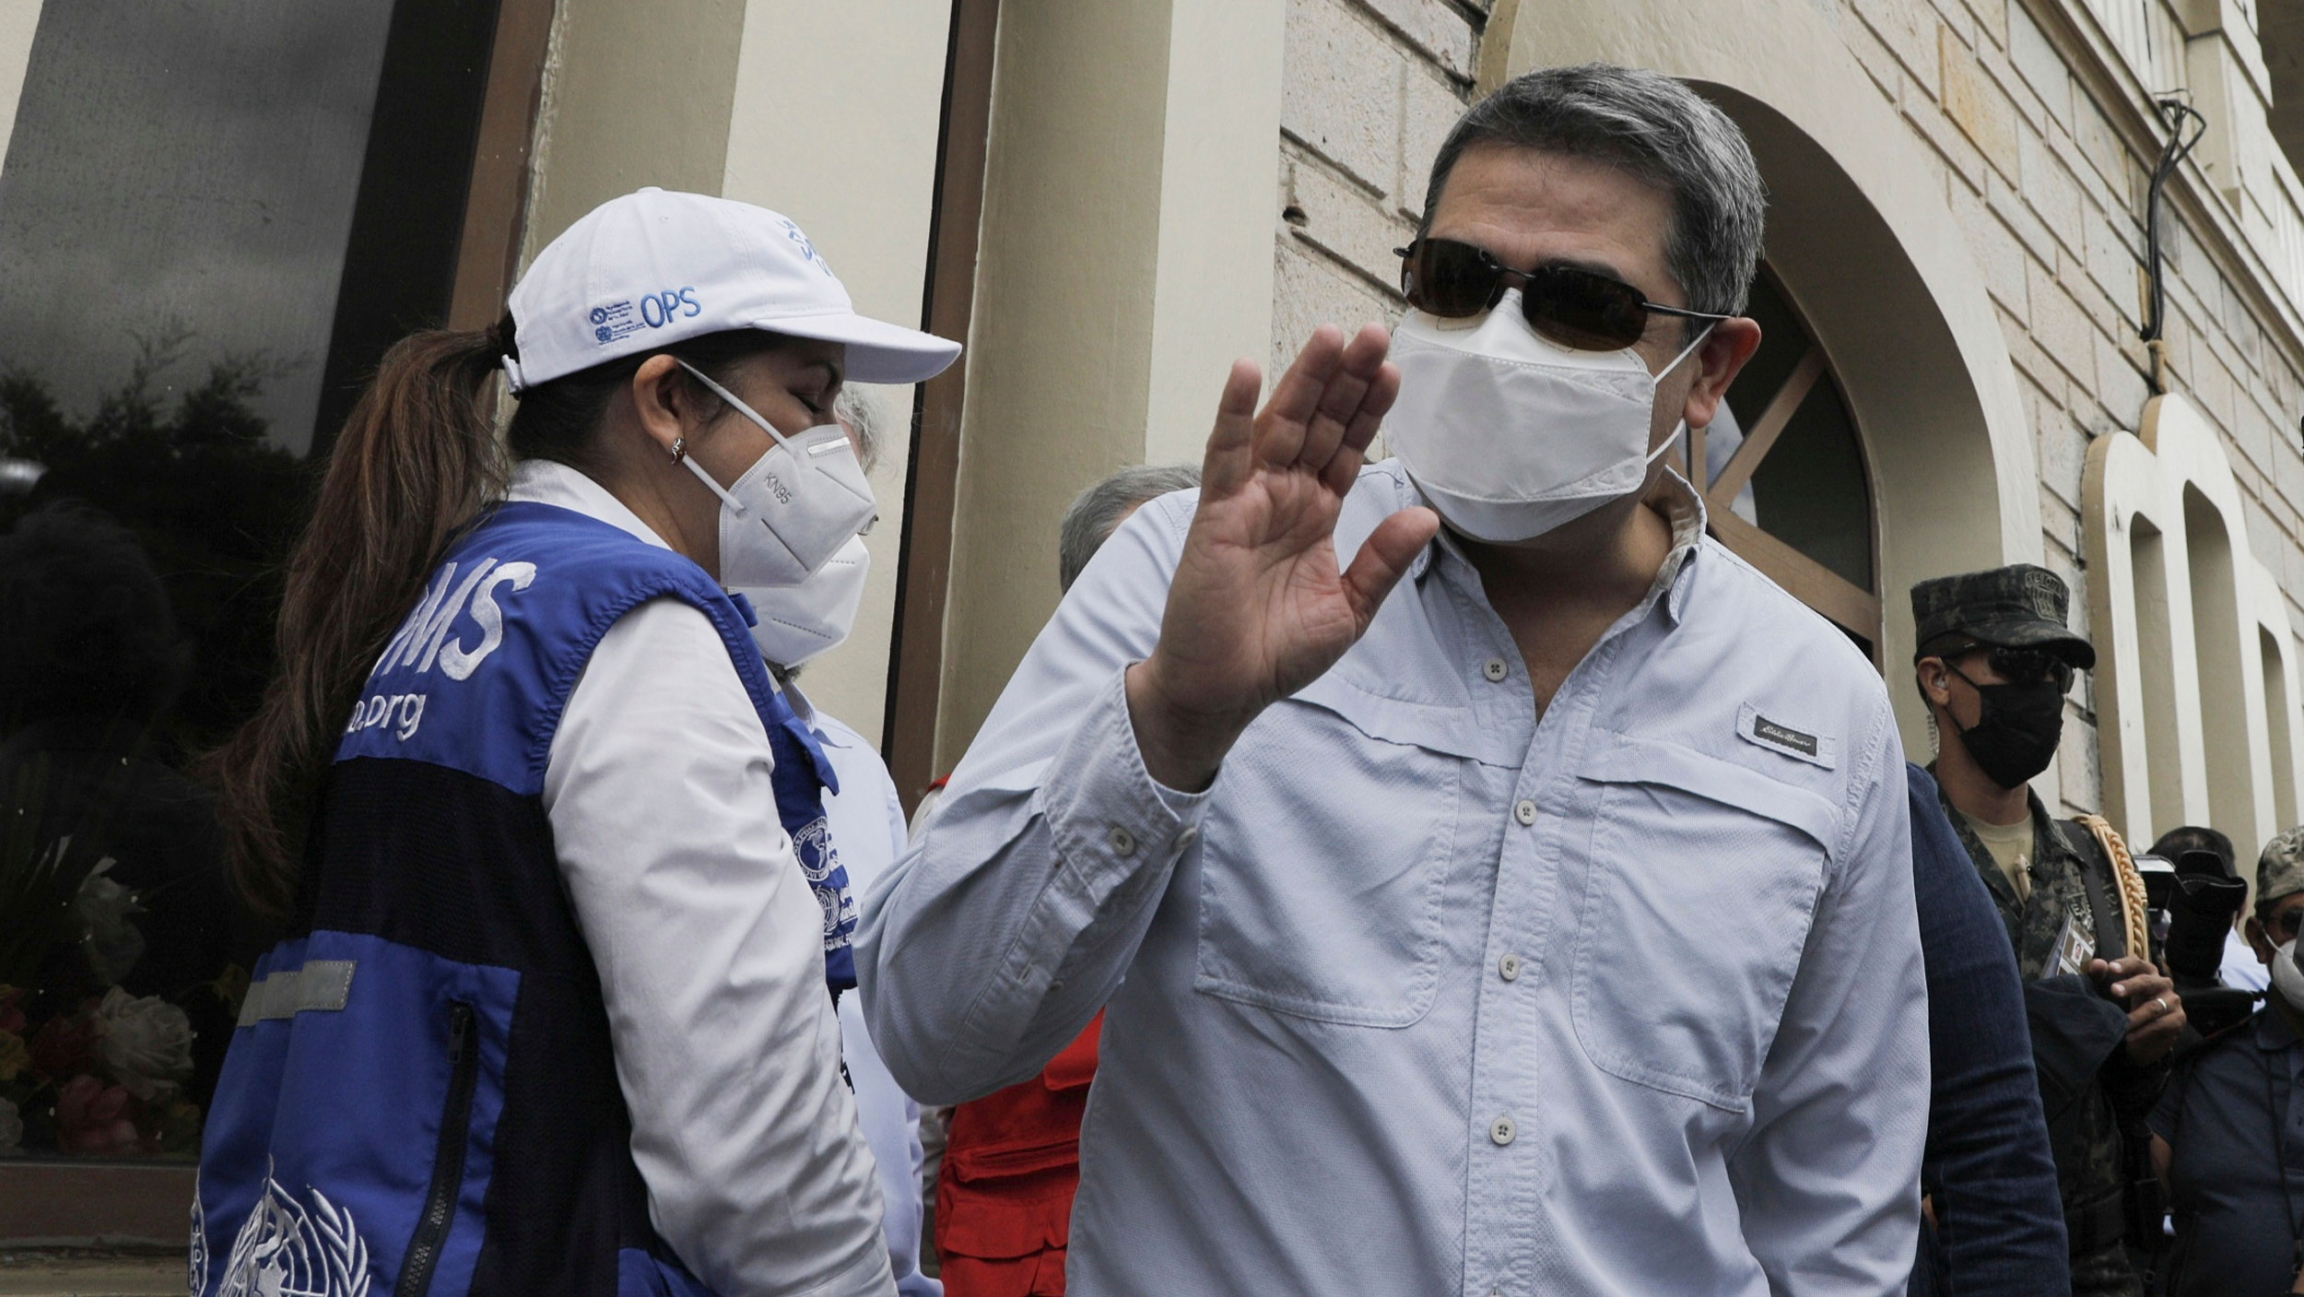 Honduran President Juan Orlando Hernandez is shown wearing a medical mask and sunglasses while waving his right hand.